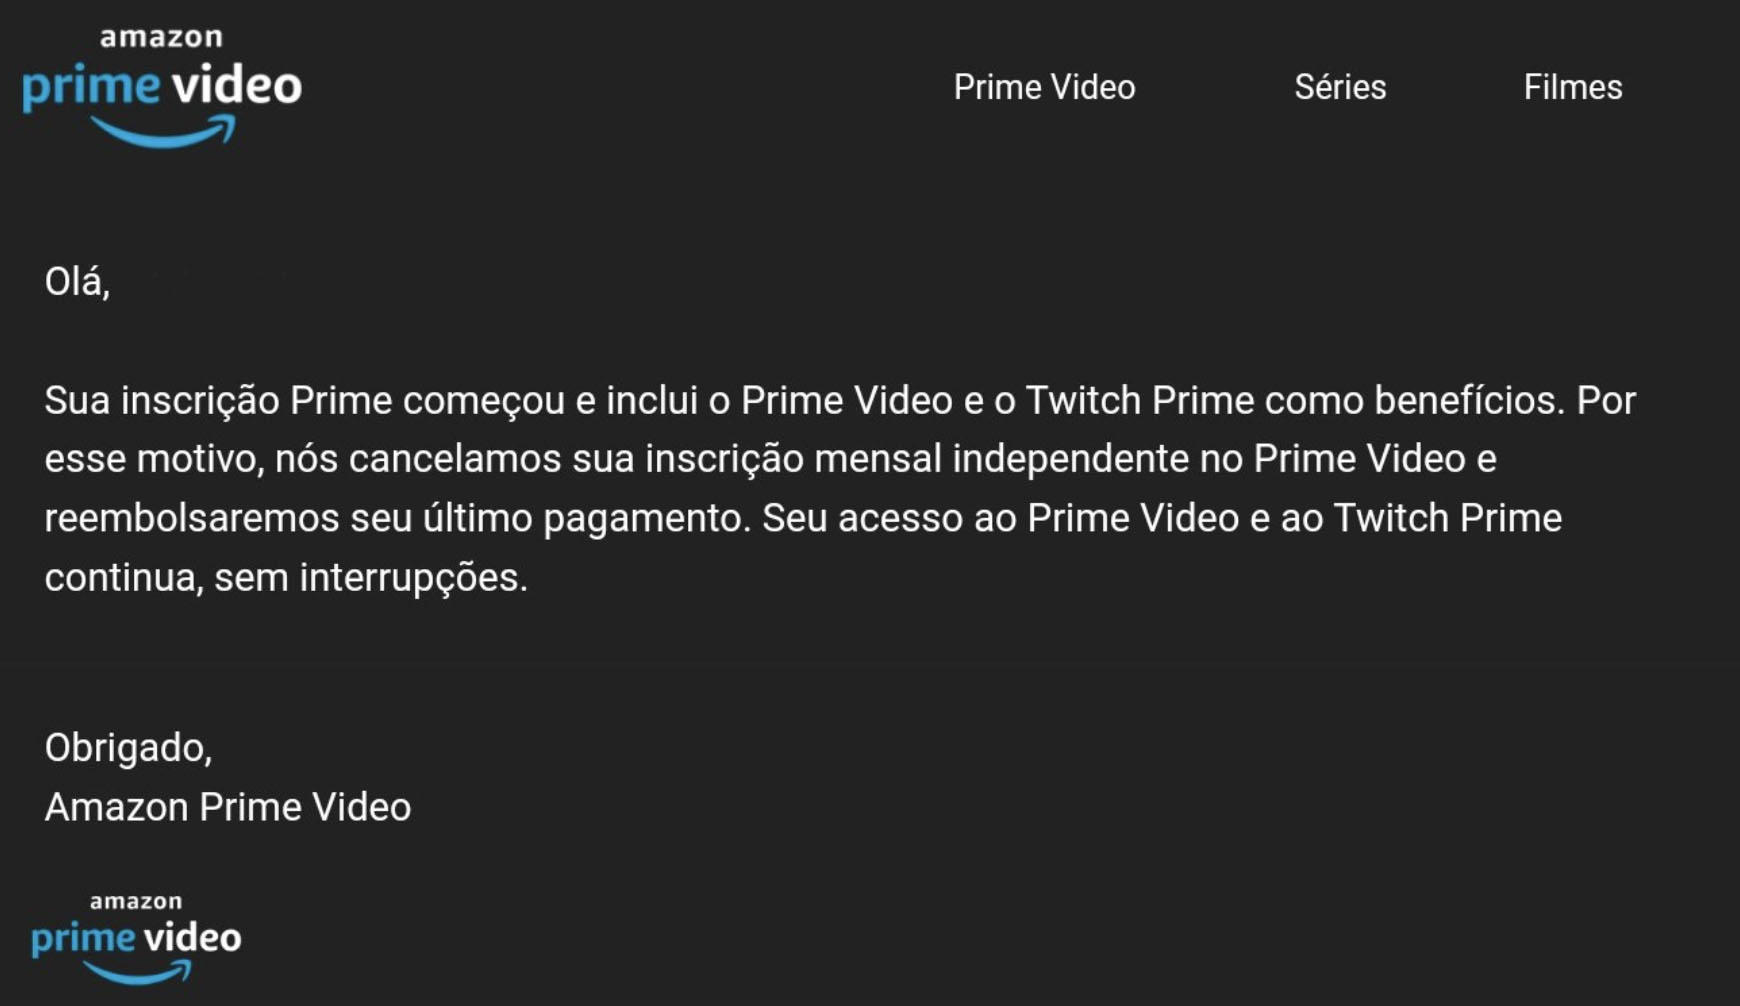 Email about Amazon Prime for Brazilian consumers